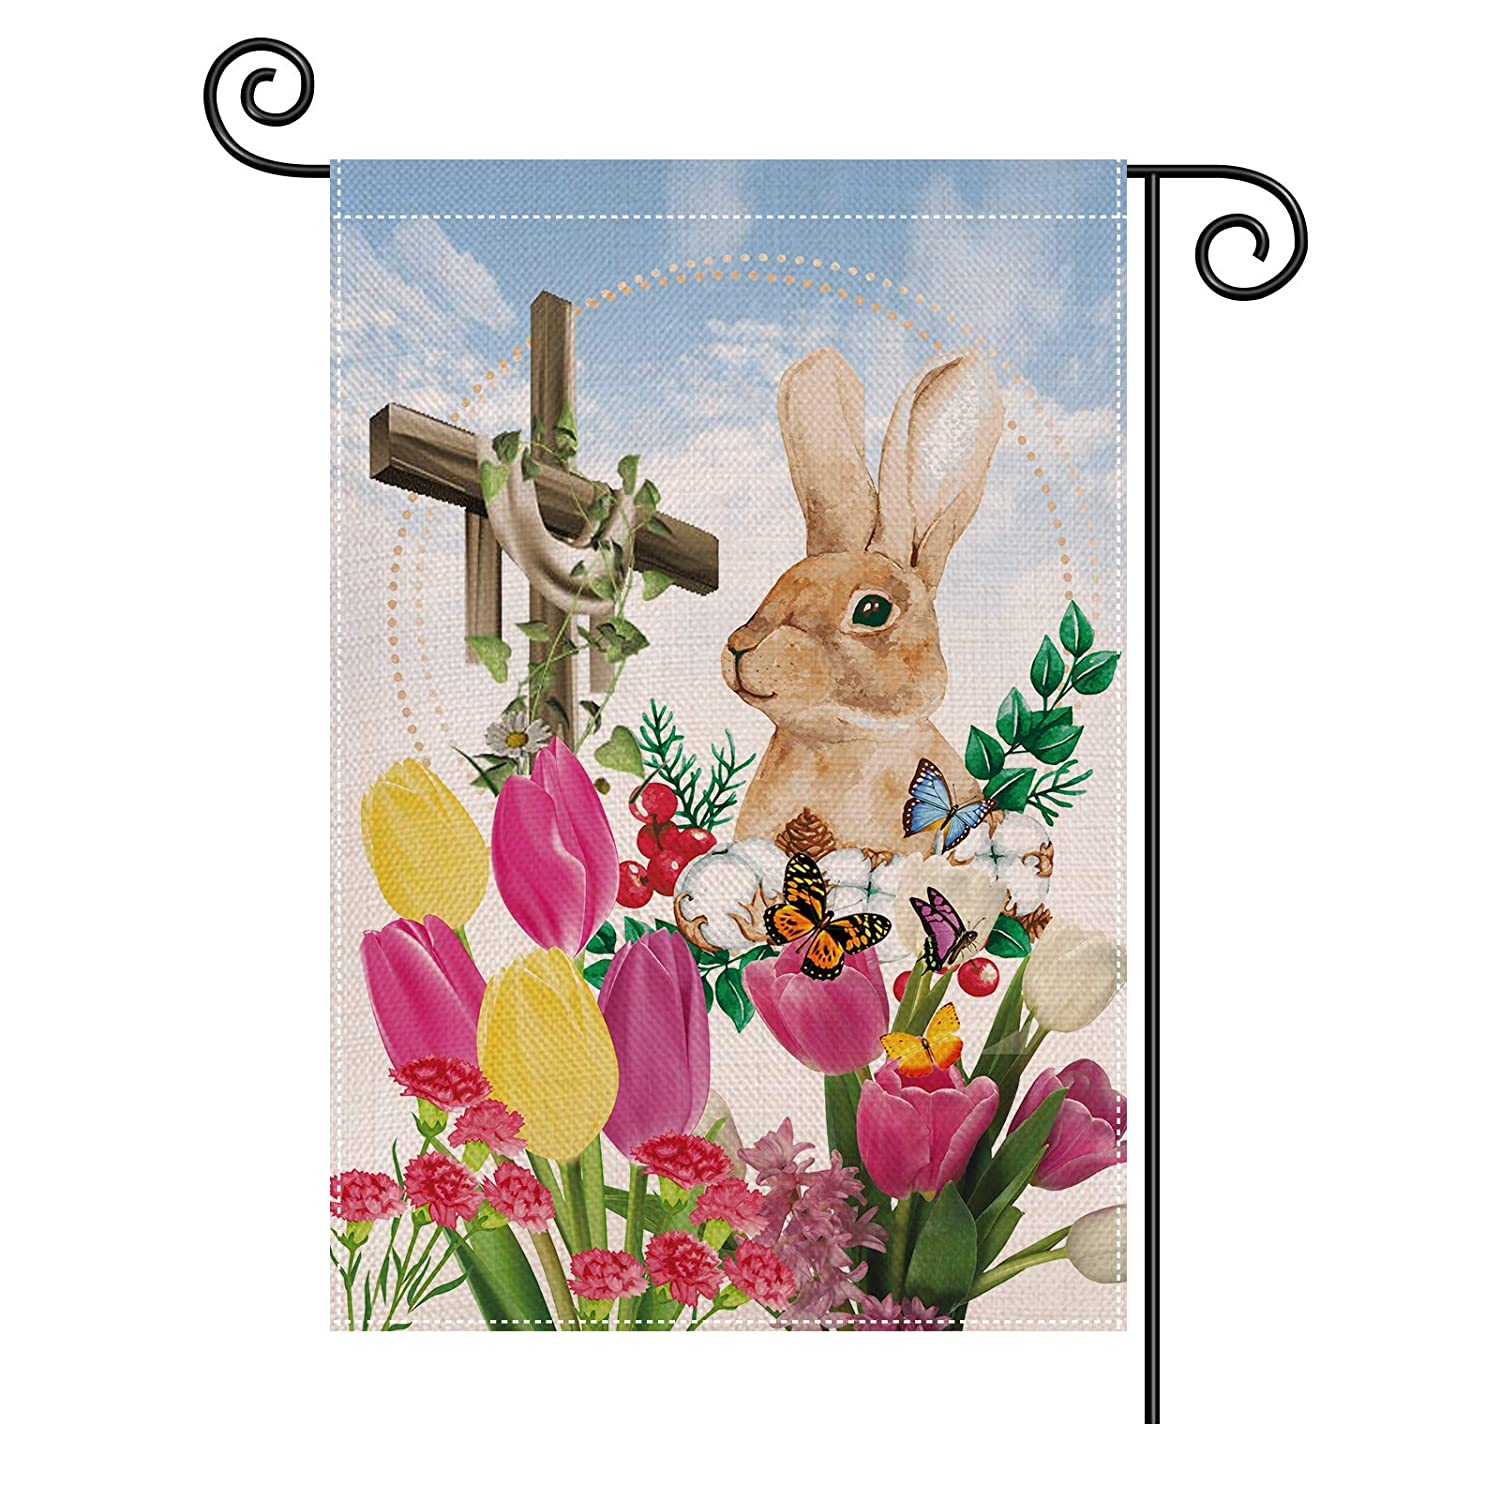 Splonary Easter Garden Flags, Vertical Double Sided 12 x 18 Retro Easter Burlap Waterproof Anti-UV Yard Flags for Spring Summer Outdoor Farmhouse Yard Home Decorations